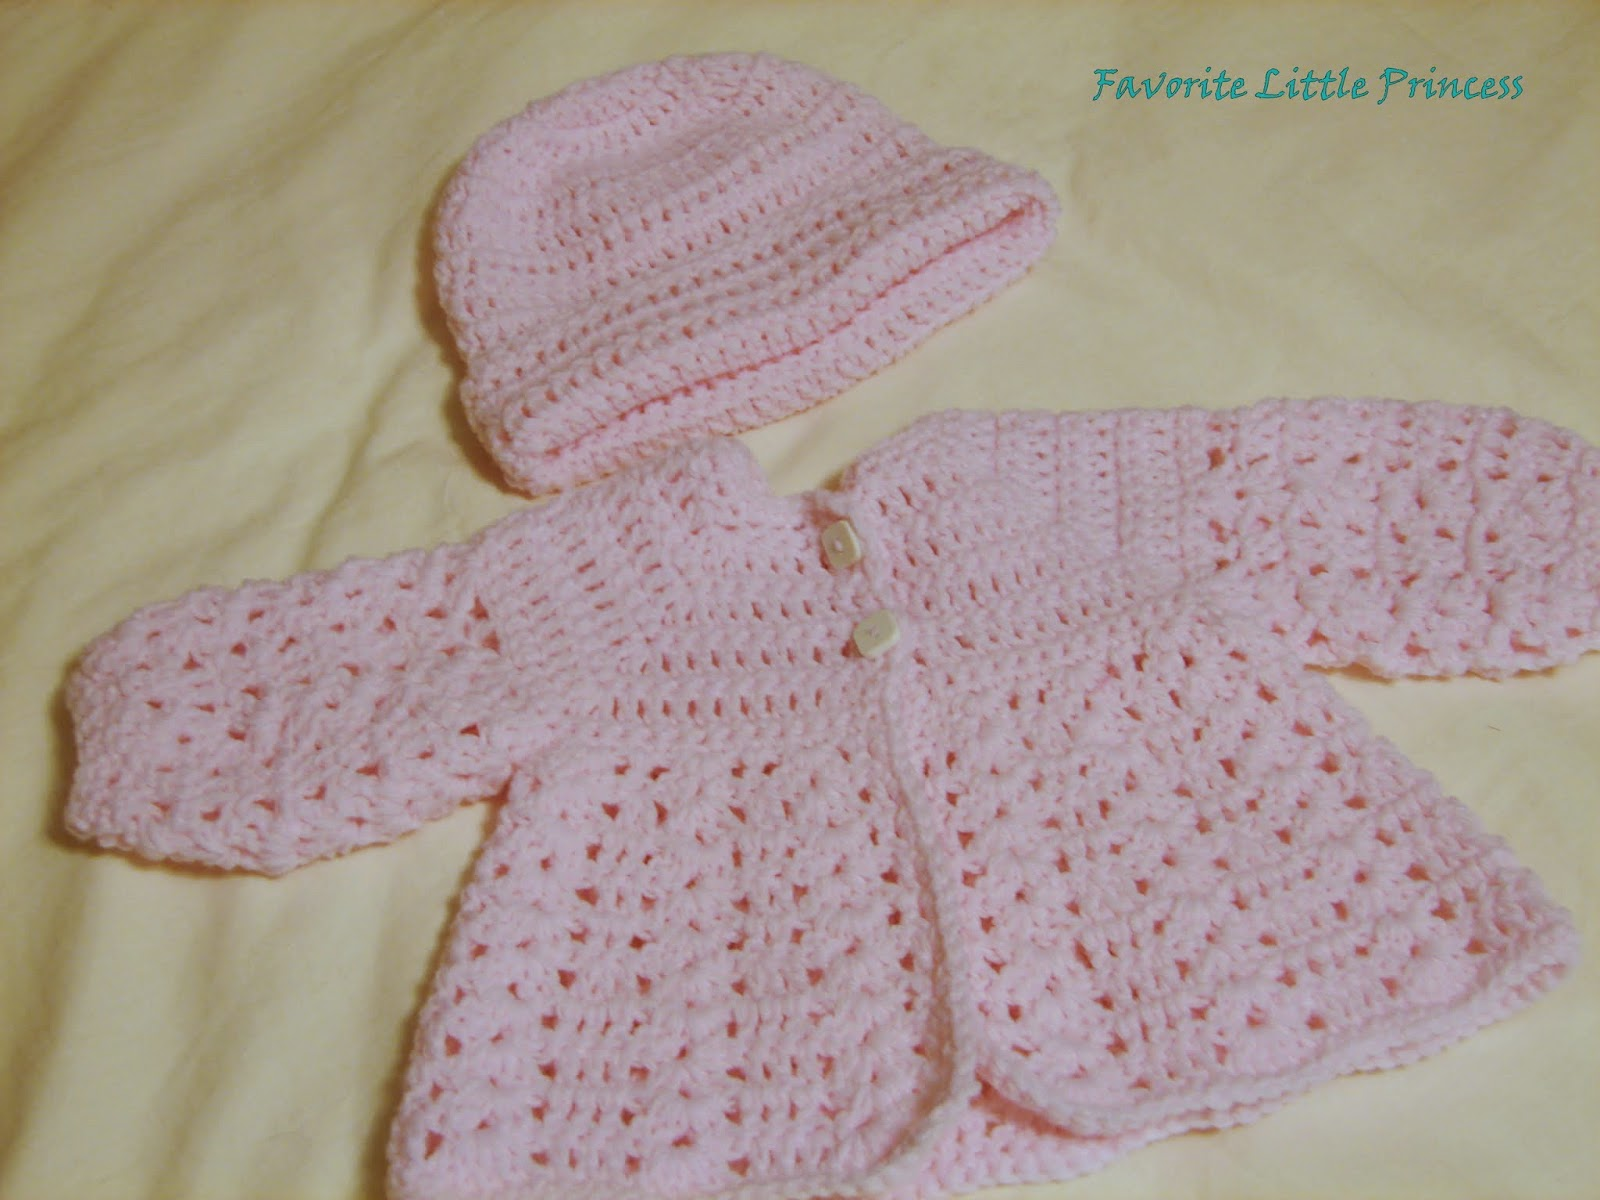 Easy Crochet Baby Sweater Pattern Free : Favorite Little Princess: Easy Baby Sweater and Hat